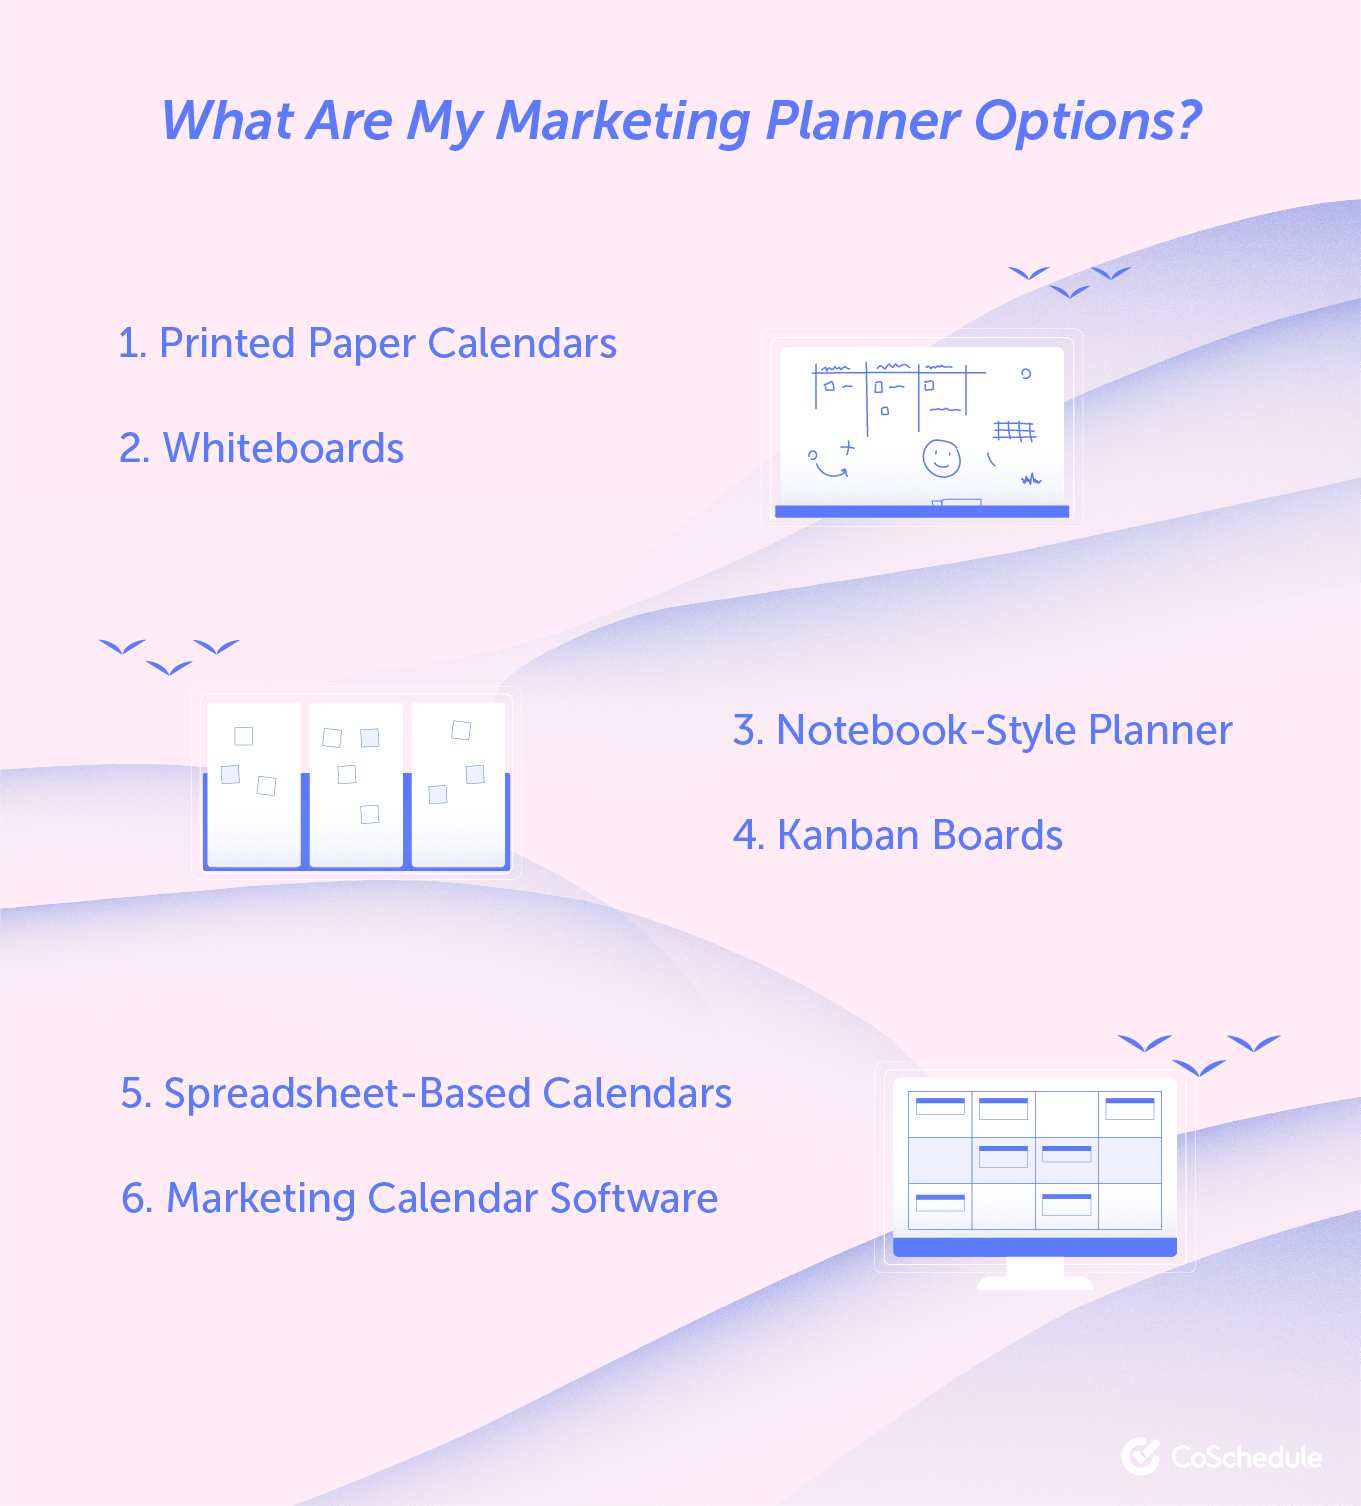 What you can use for marketing planning